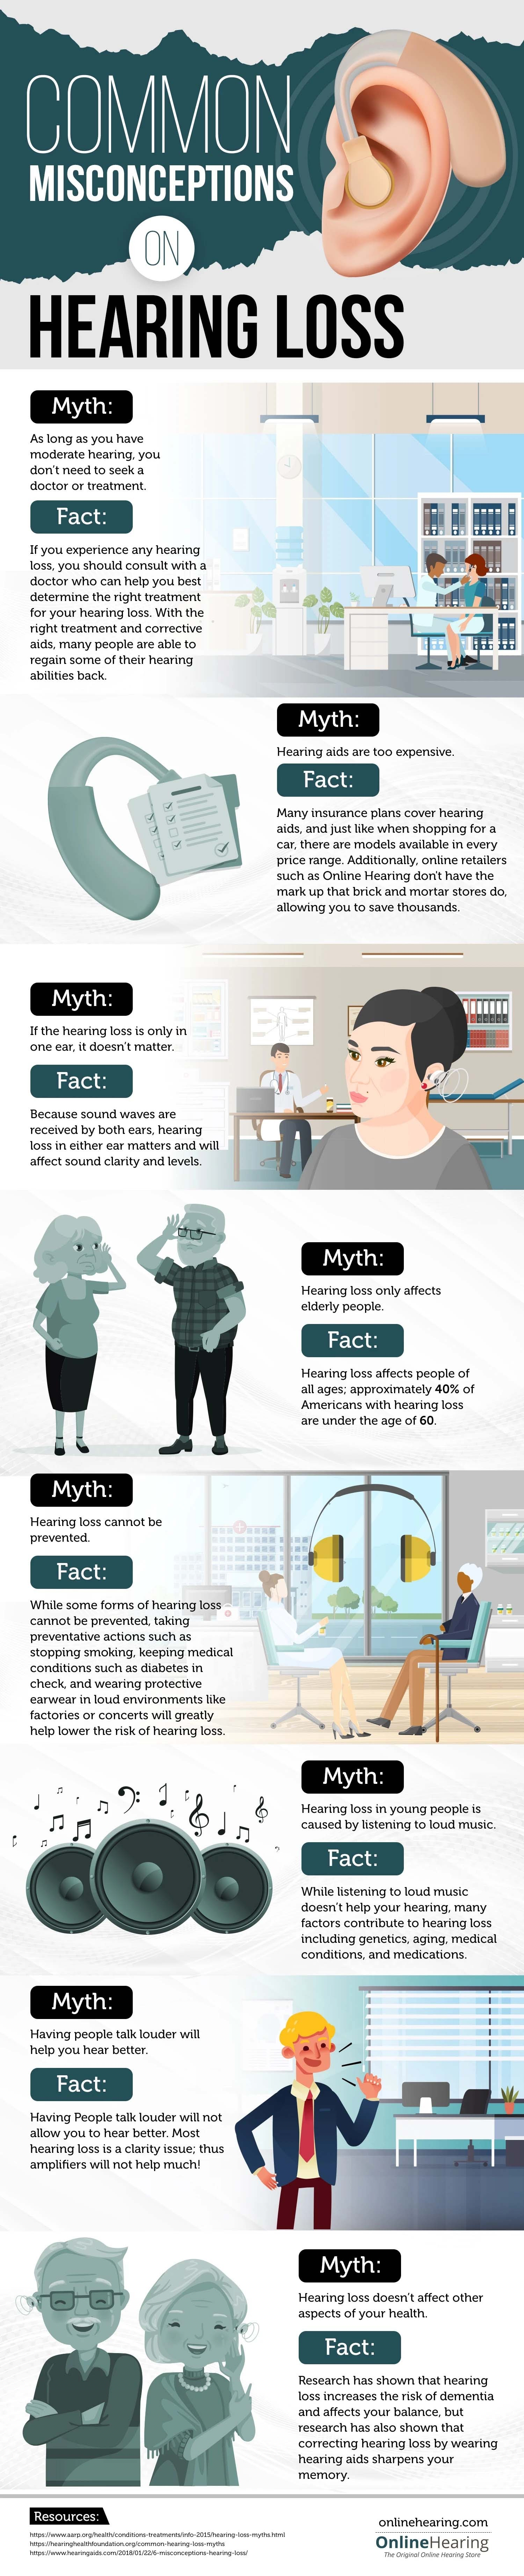 Common Misconceptions on Hearing Loss #infographic